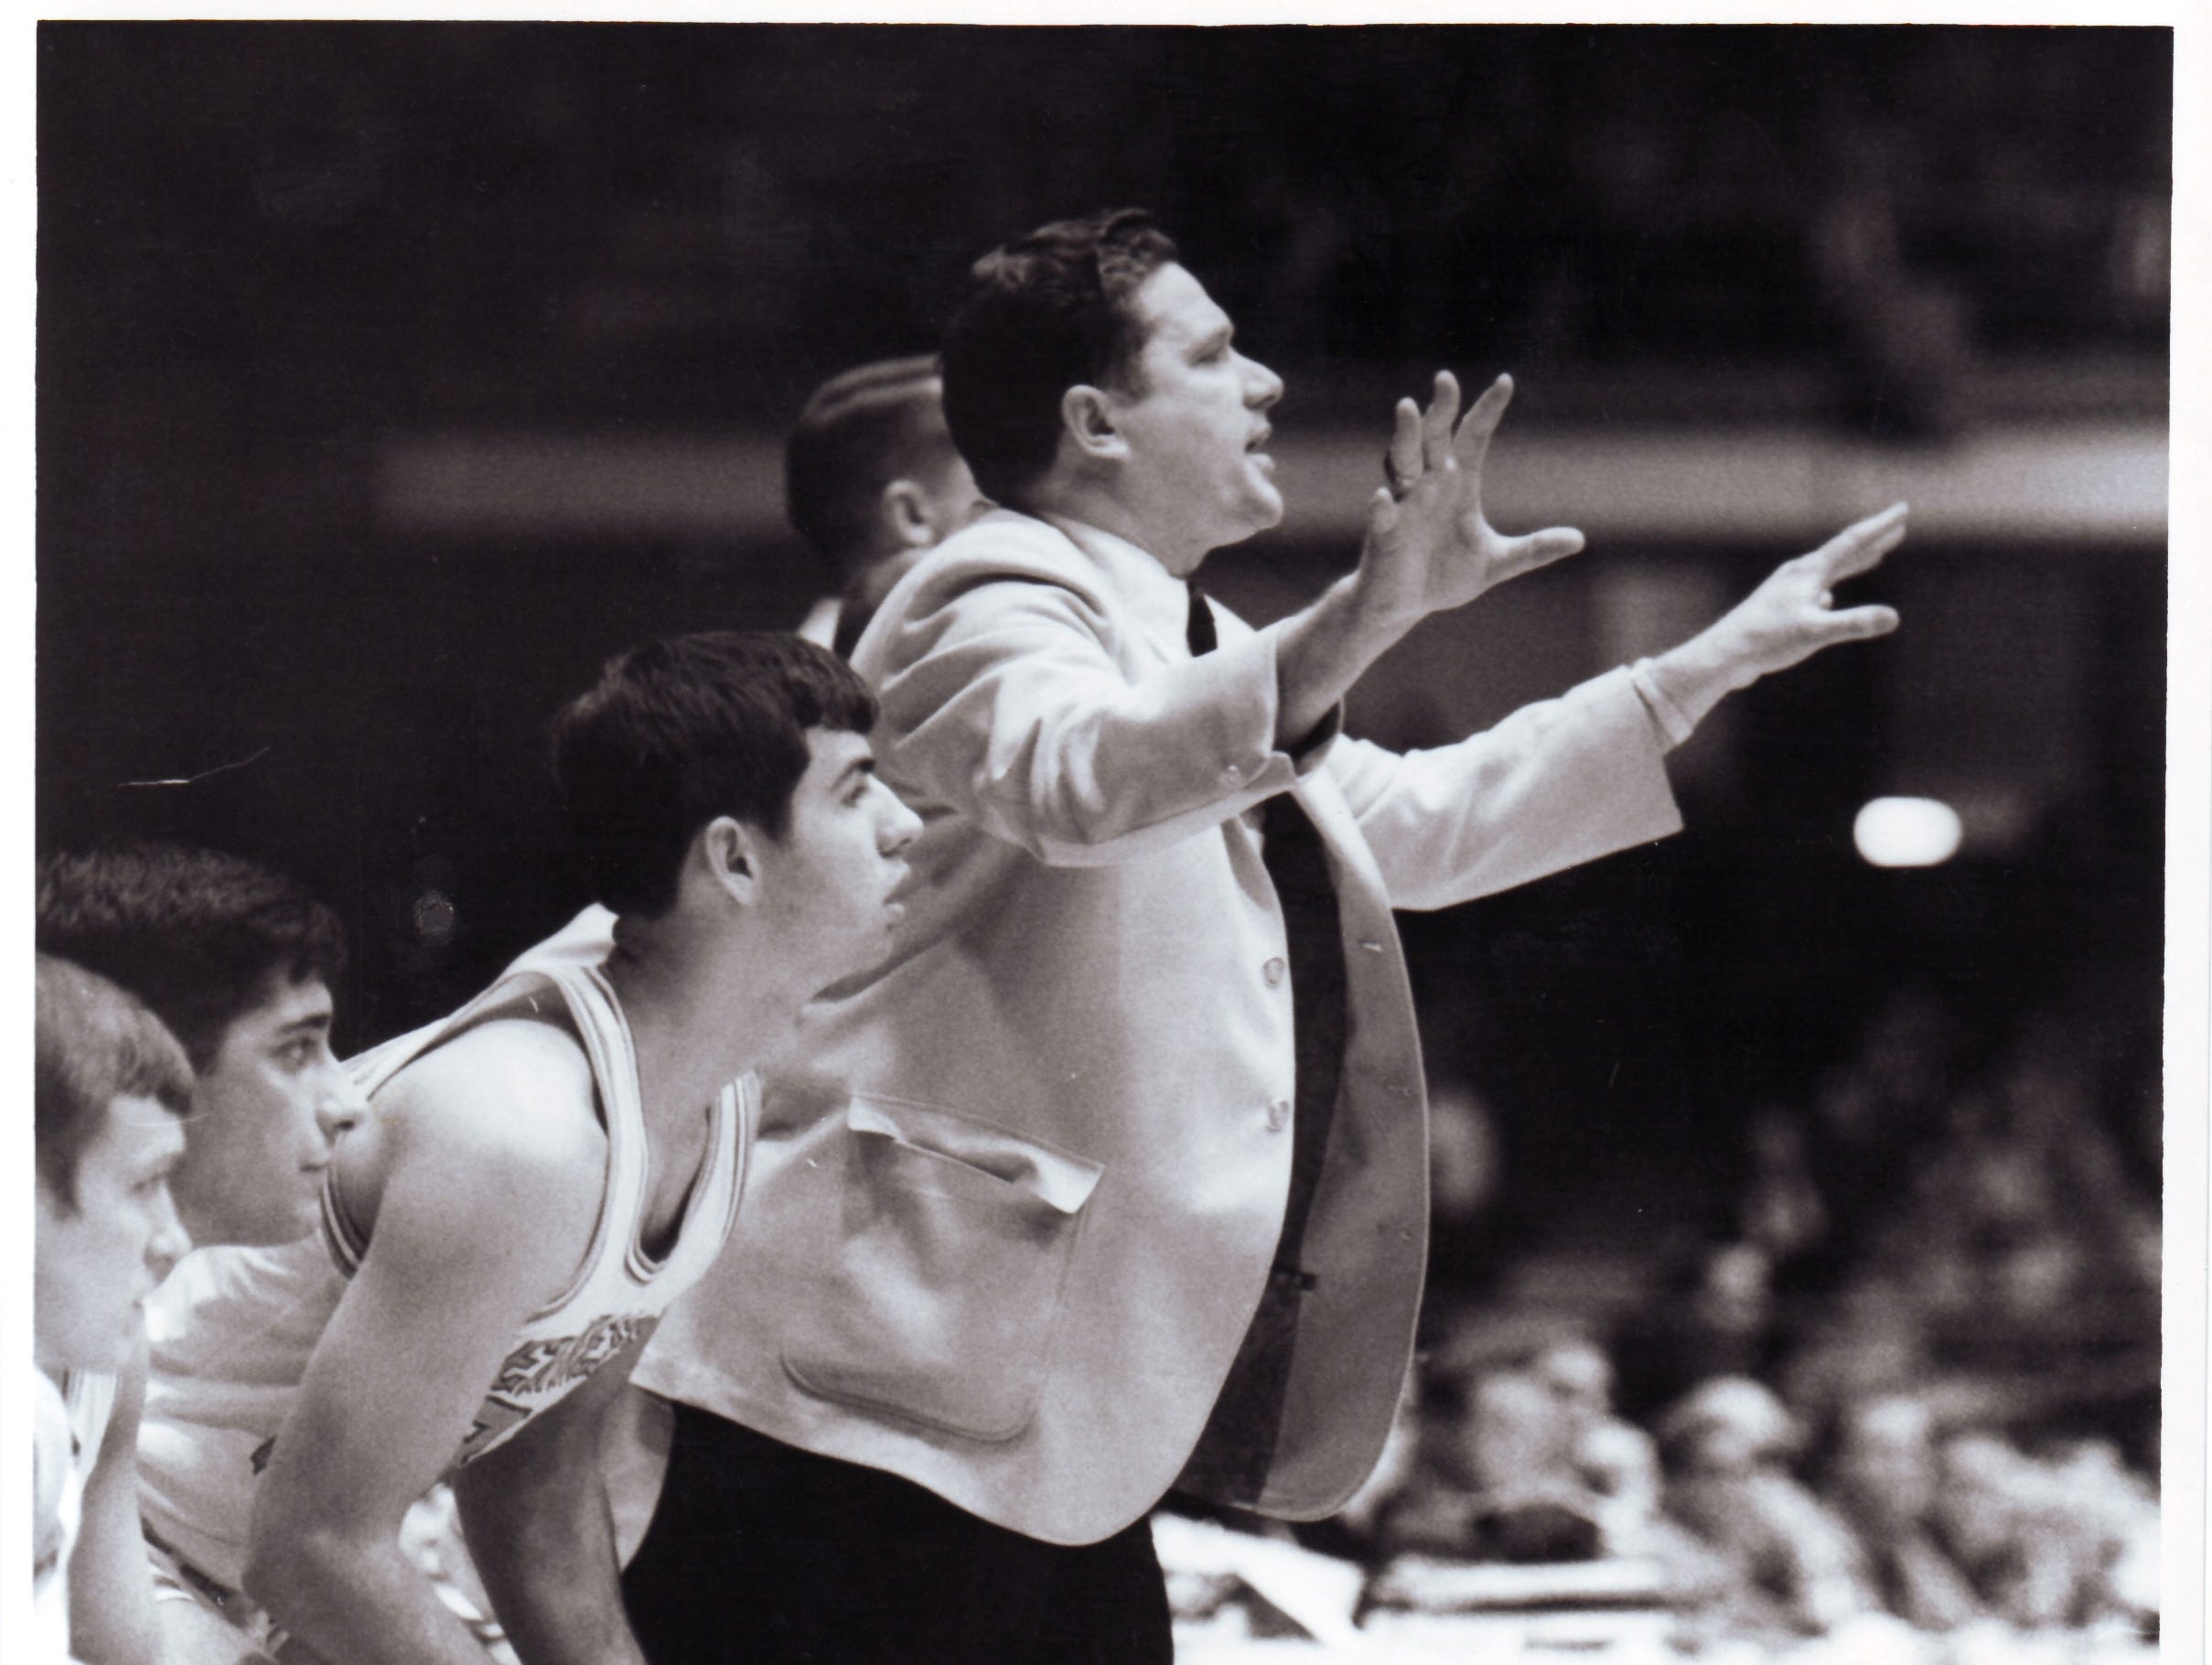 University of Tennessee basketball Coach Ray Mears is pictured in an undated photograph. Mears died at age 80 on June 11, 2007.